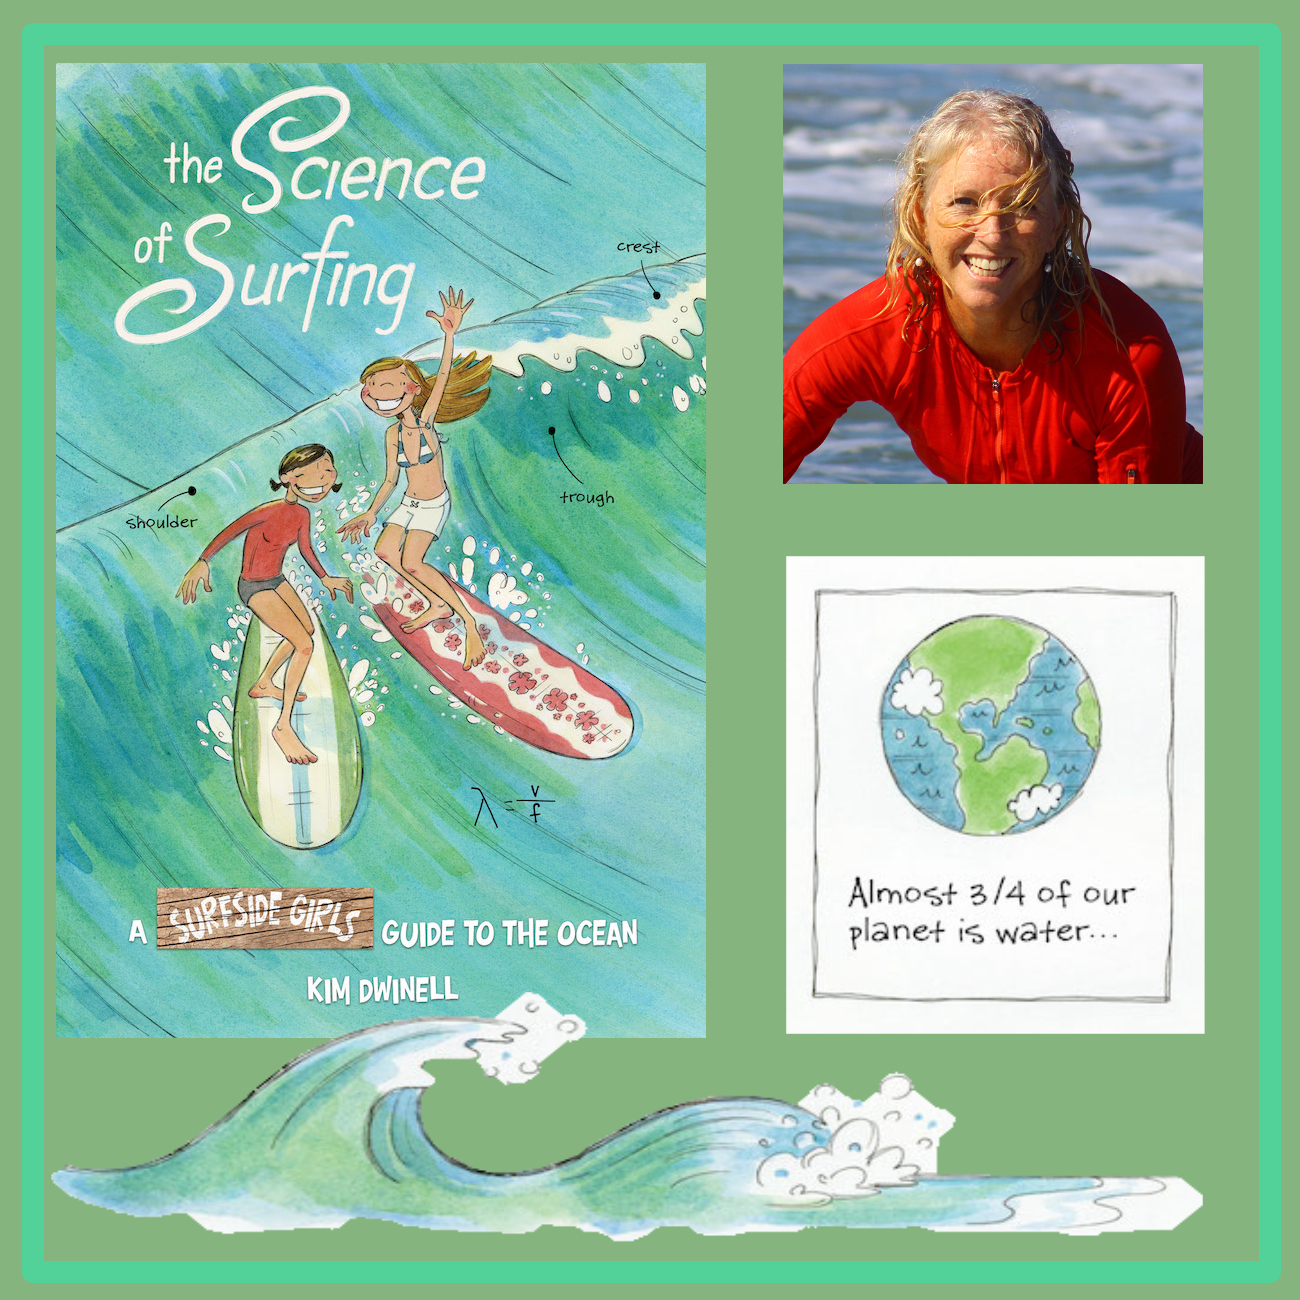 Kim Dwinell, idw publishing, science of surfing, Surfside girls, top shelf productions, graphic novels